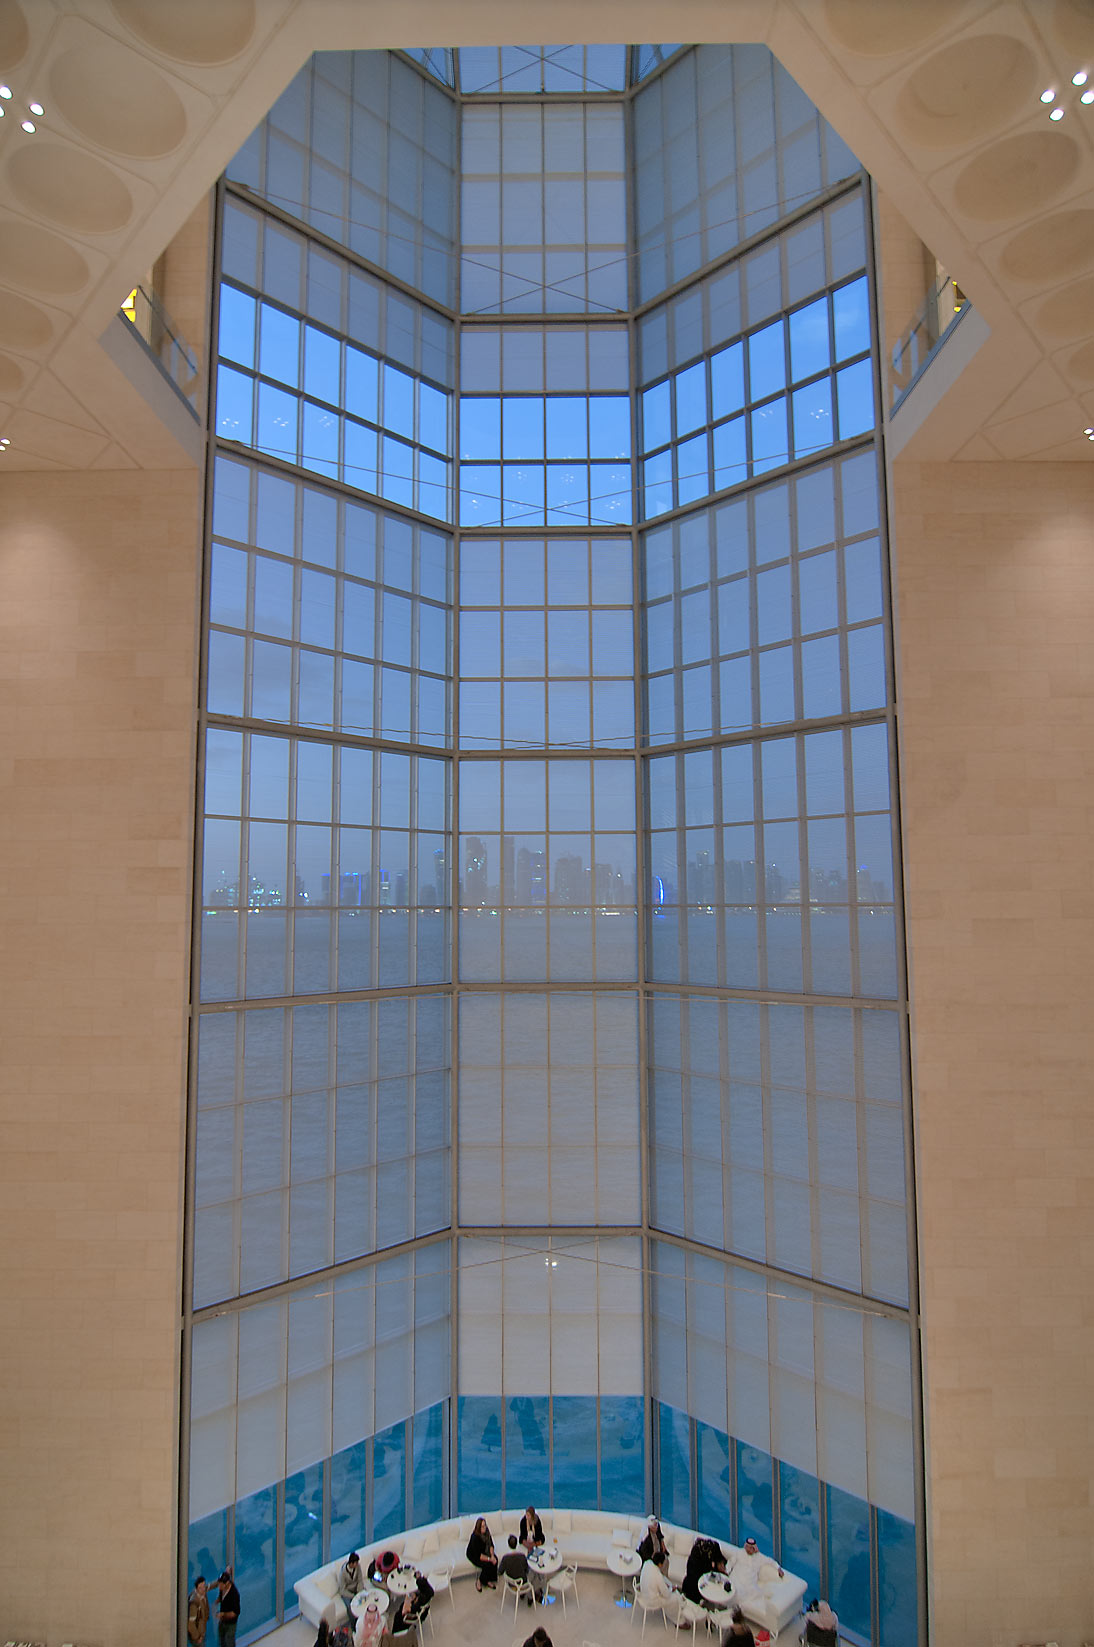 5-storey window of Museum of Islamic Art. Doha, Qatar